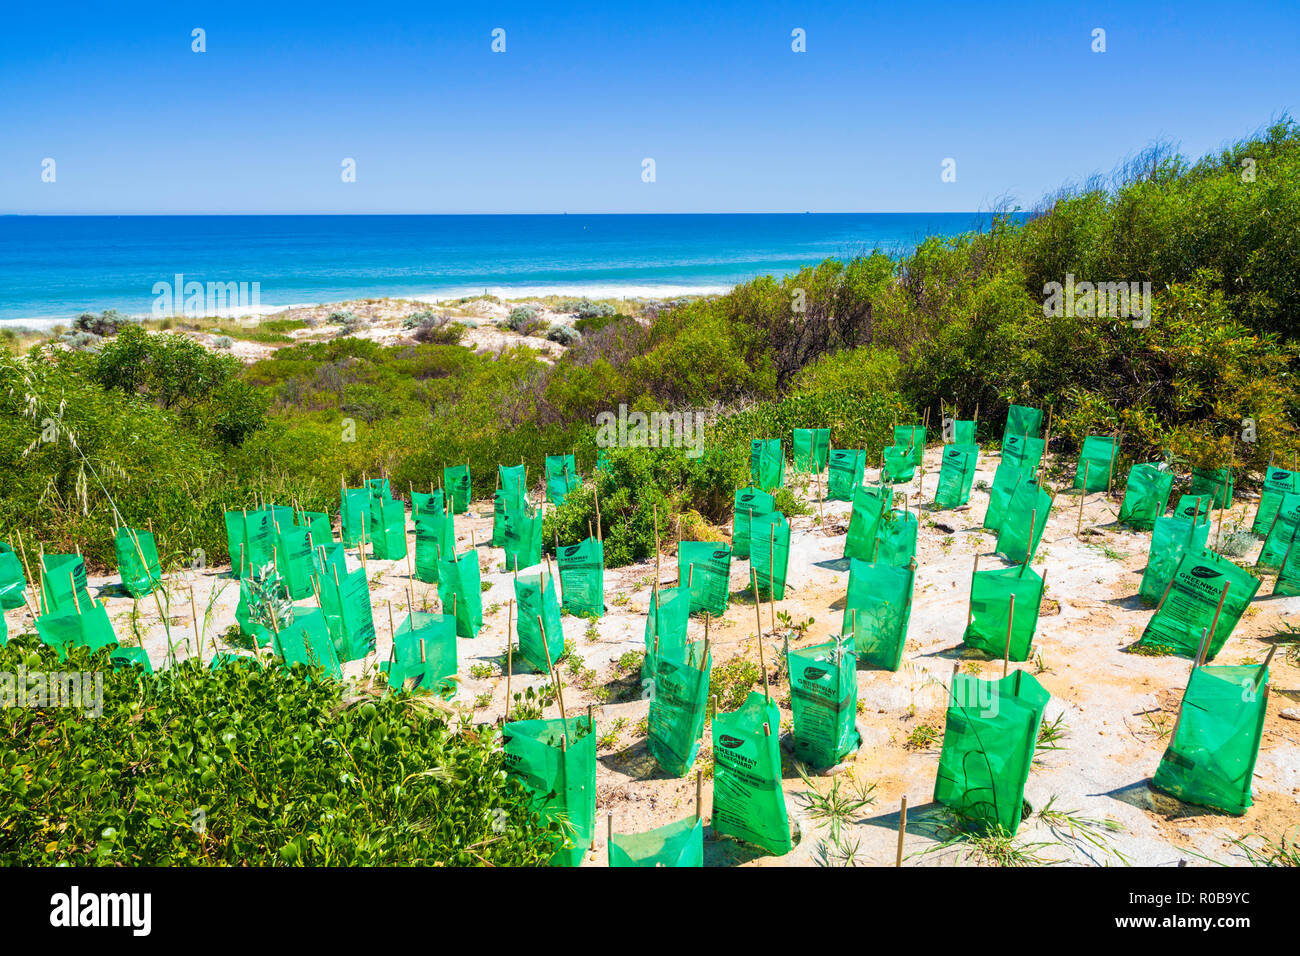 New native plants with seedling protectors planted in a sand Dune Conservation Area at Cottesloe Beach, - Stock Image